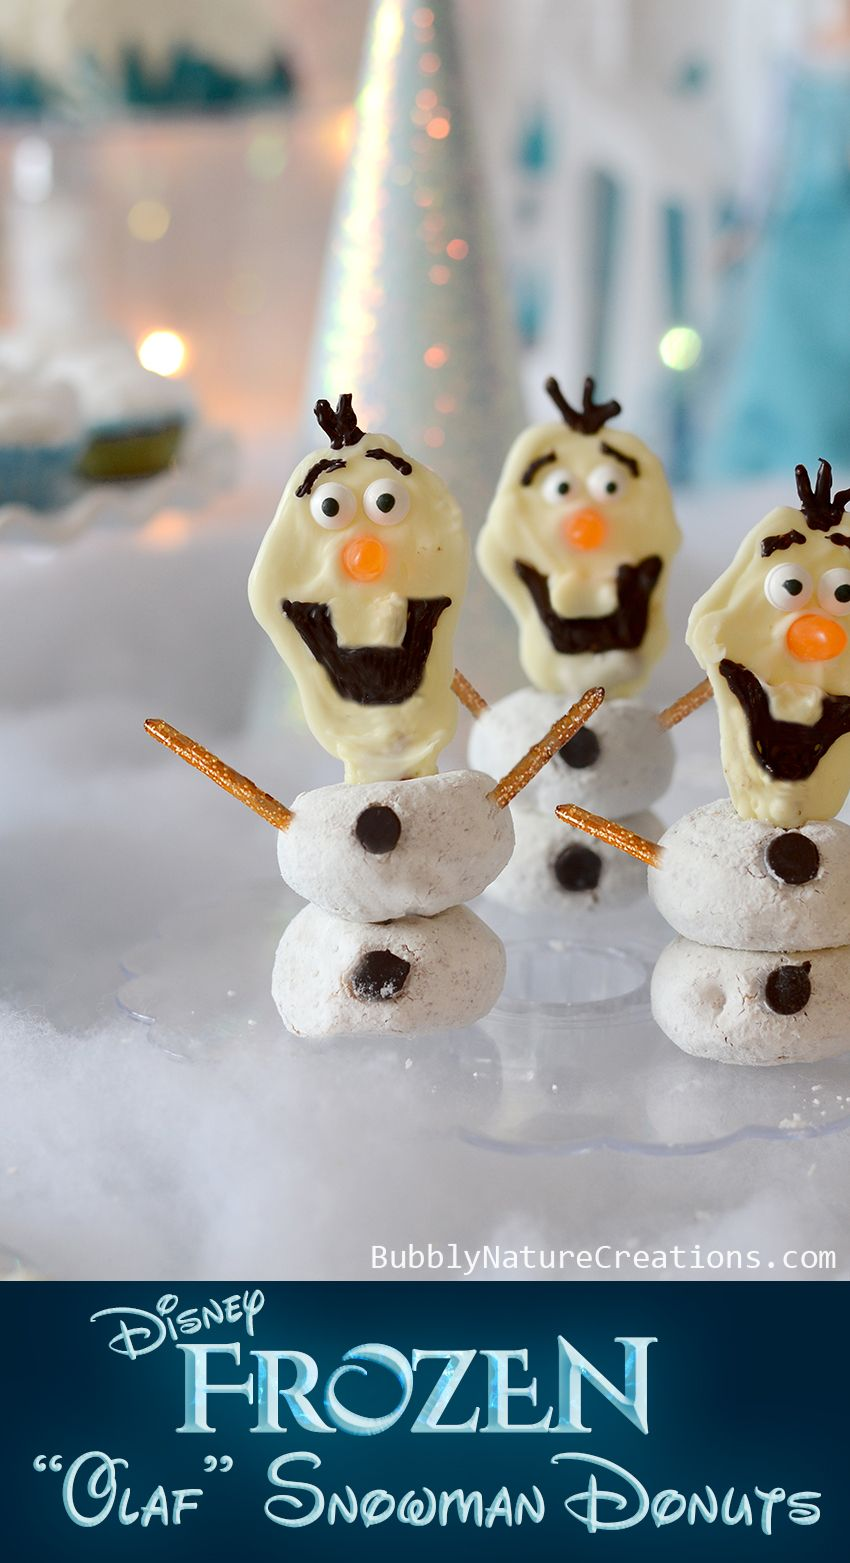 Disney Frozen Olaf Snowman Donuts How To Cute Idea Think Ill Use The Bottom Base Of 2 Mini Powdered Donuts With A Powdered Pompom Donut Head For A